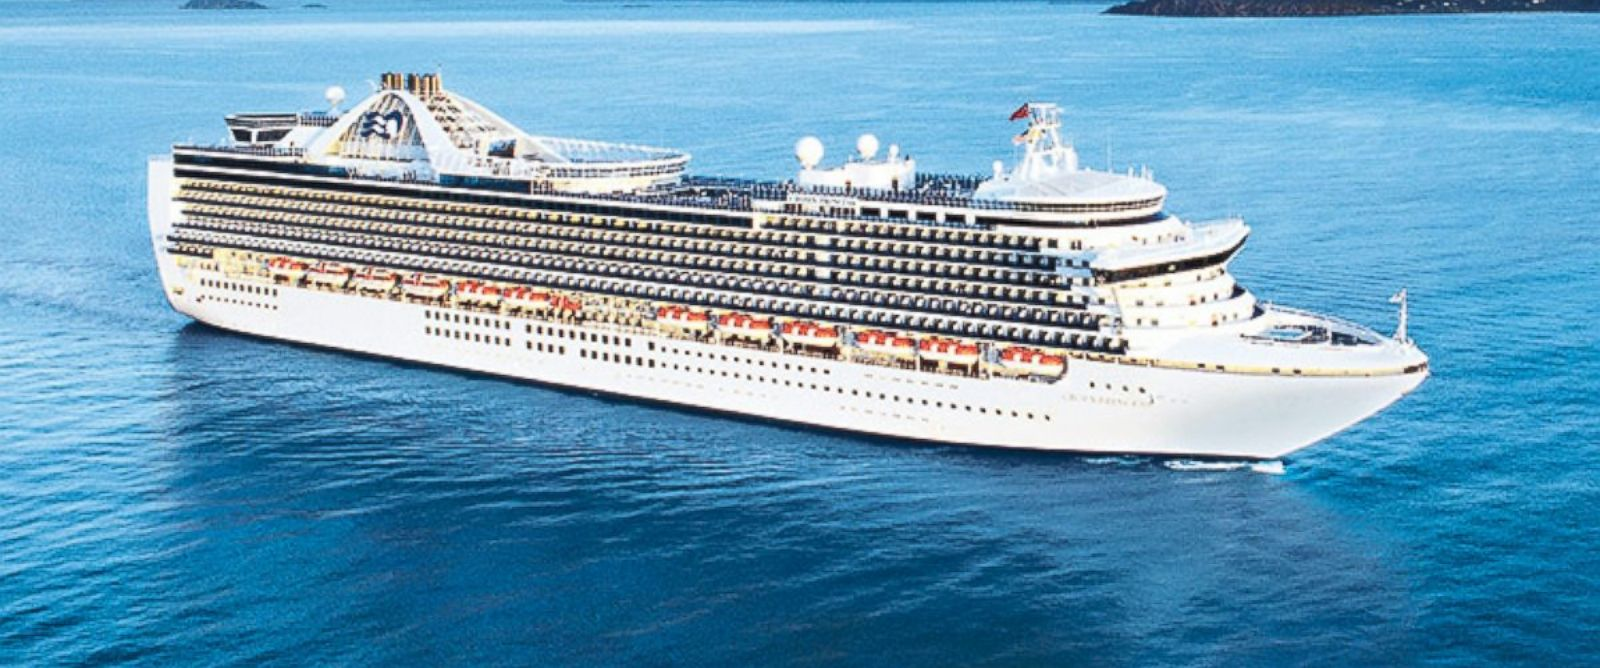 Image JC Cruise Shipjpg Just Cause Wiki FANDOM Powered By - Image of cruise ship